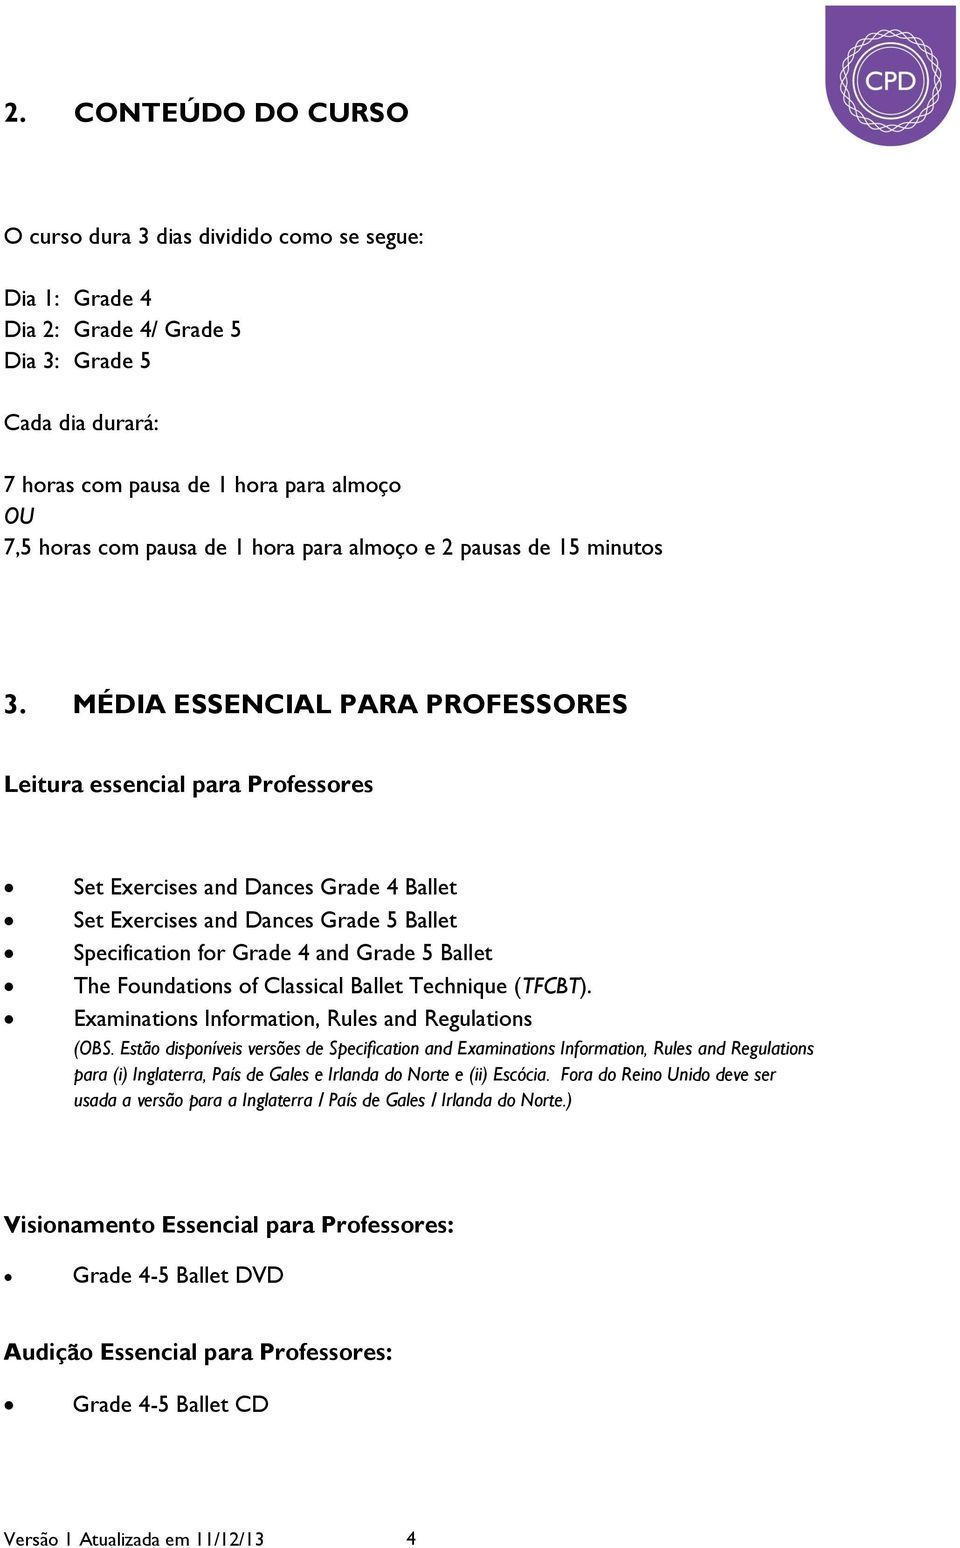 MÉDIA ESSENCIAL PARA PROFESSORES Leitura essencial para Professores Set Exercises and Dances Grade 4 Ballet Set Exercises and Dances Grade 5 Ballet Specification for Grade 4 and Grade 5 Ballet The